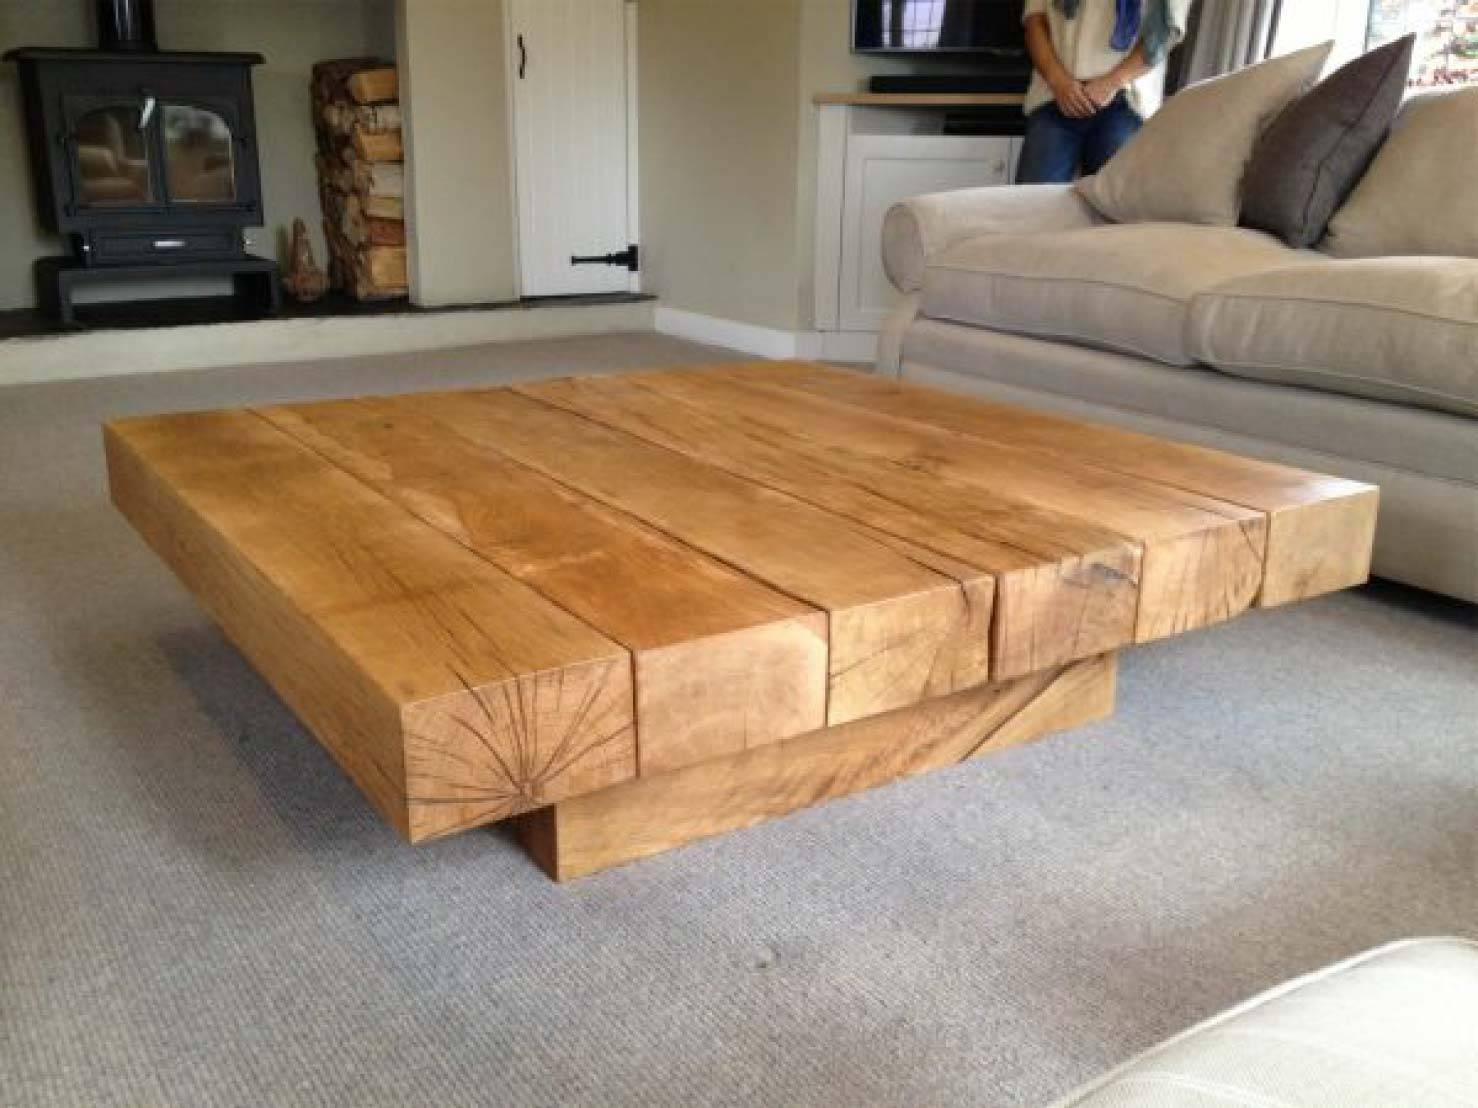 Square Oak Coffee Table Project #59 | Abacus Tables with Large Square Oak Coffee Tables (Image 15 of 15)